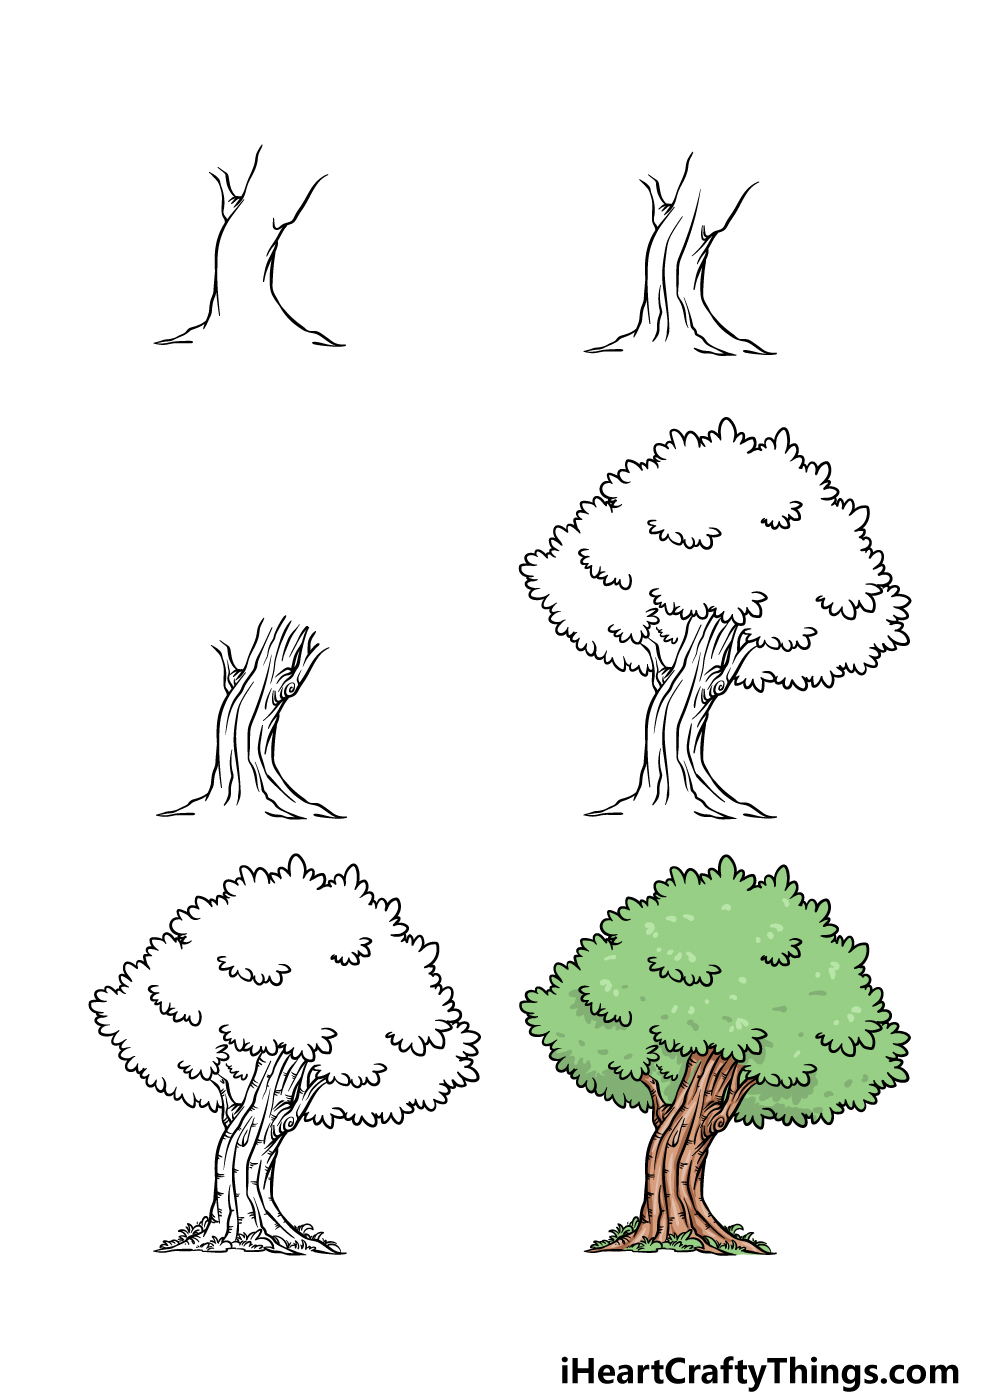 how to draw an oak tree in 6 steps